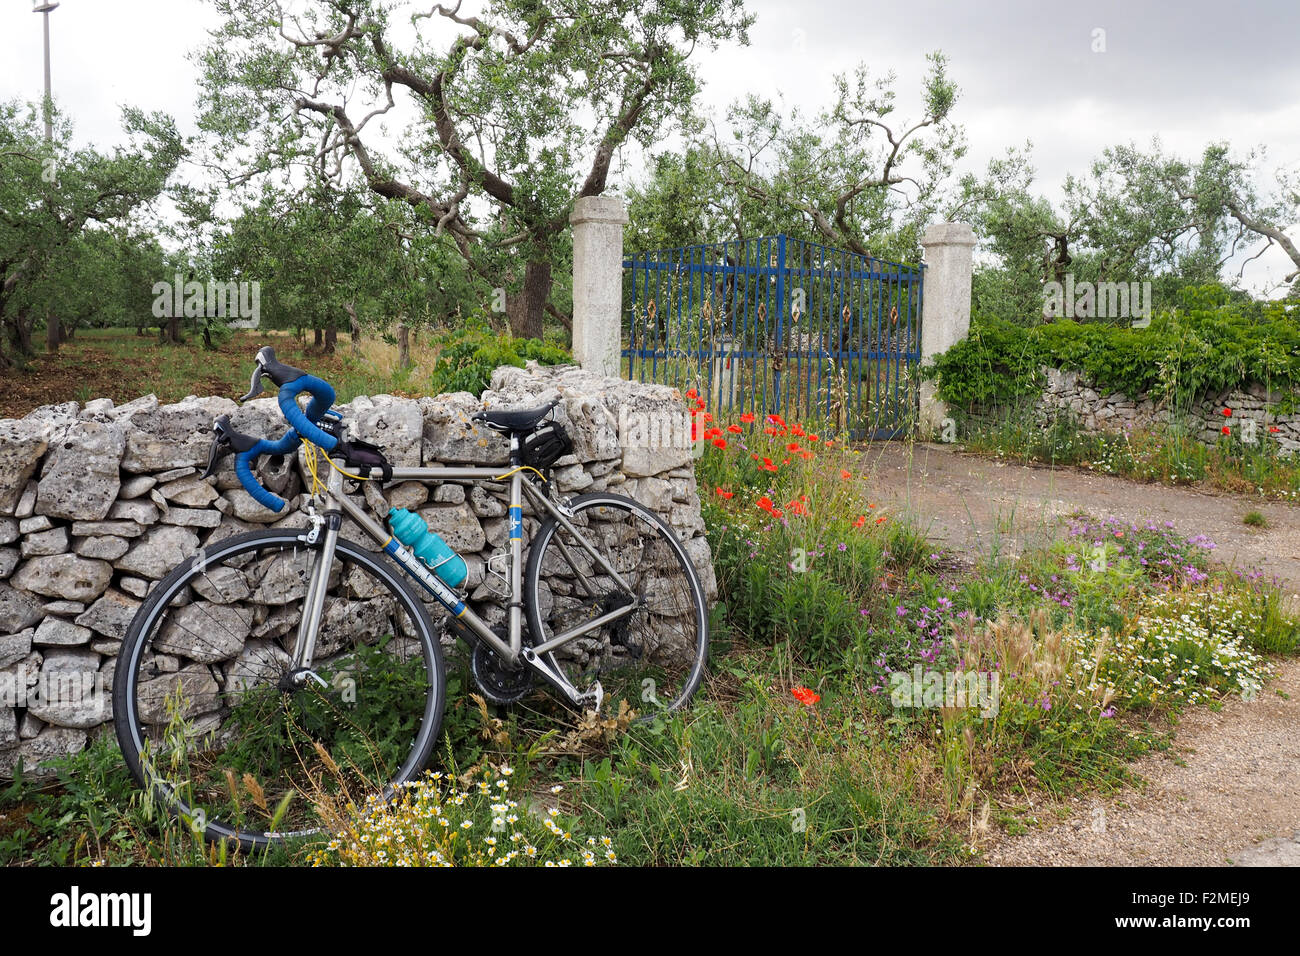 a-titanium-road-bike-leaning-against-a-stone-wall-in-front-of-an-olive-F2MEJ9.jpg